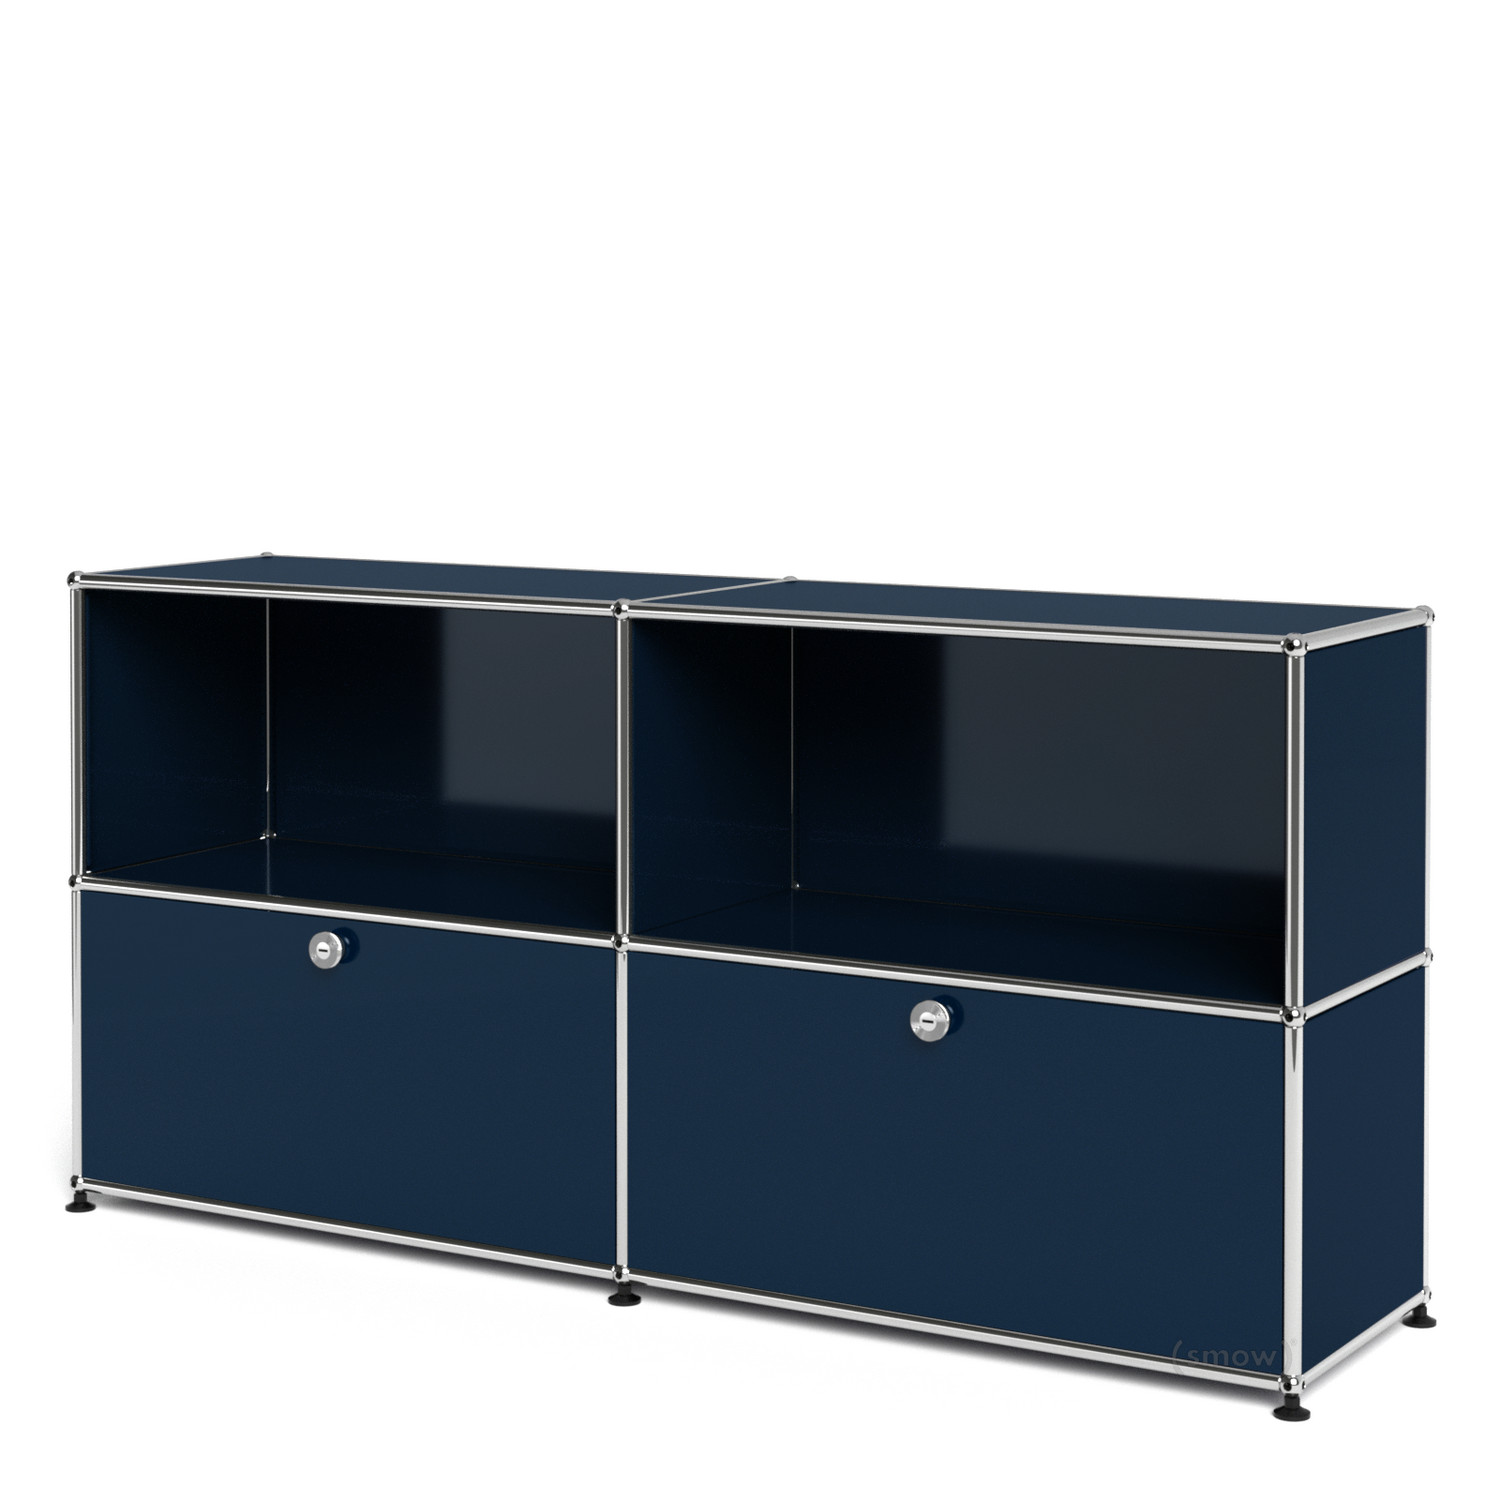 Usm haller sideboard l with 2 drop down doors steel blue for Sideboard usm